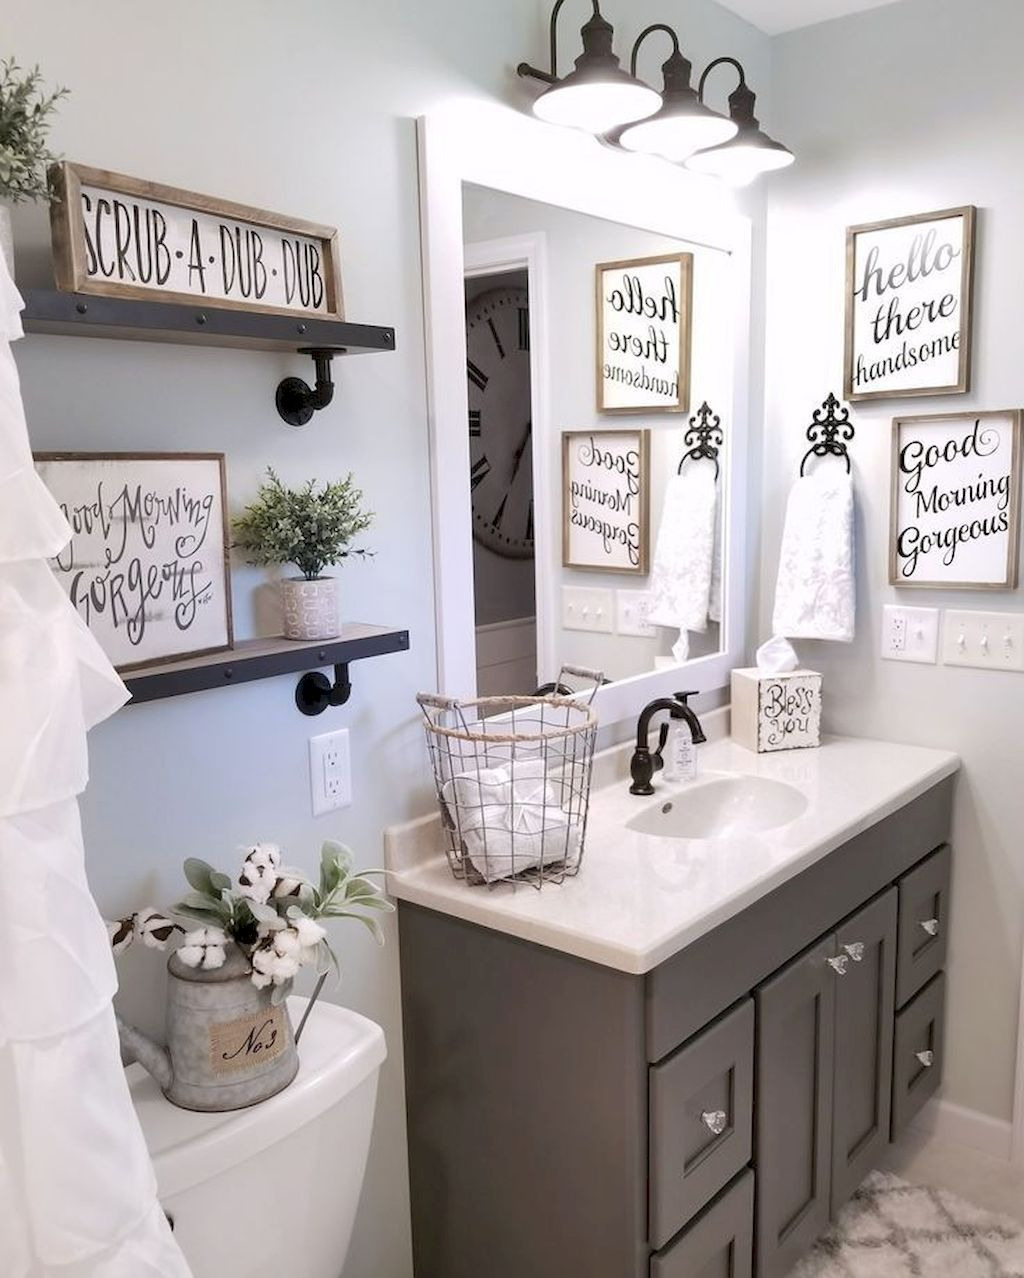 Kids Bathroom Decorating Ideas Lovely Pin by Gena Baxter On Ideas for the House